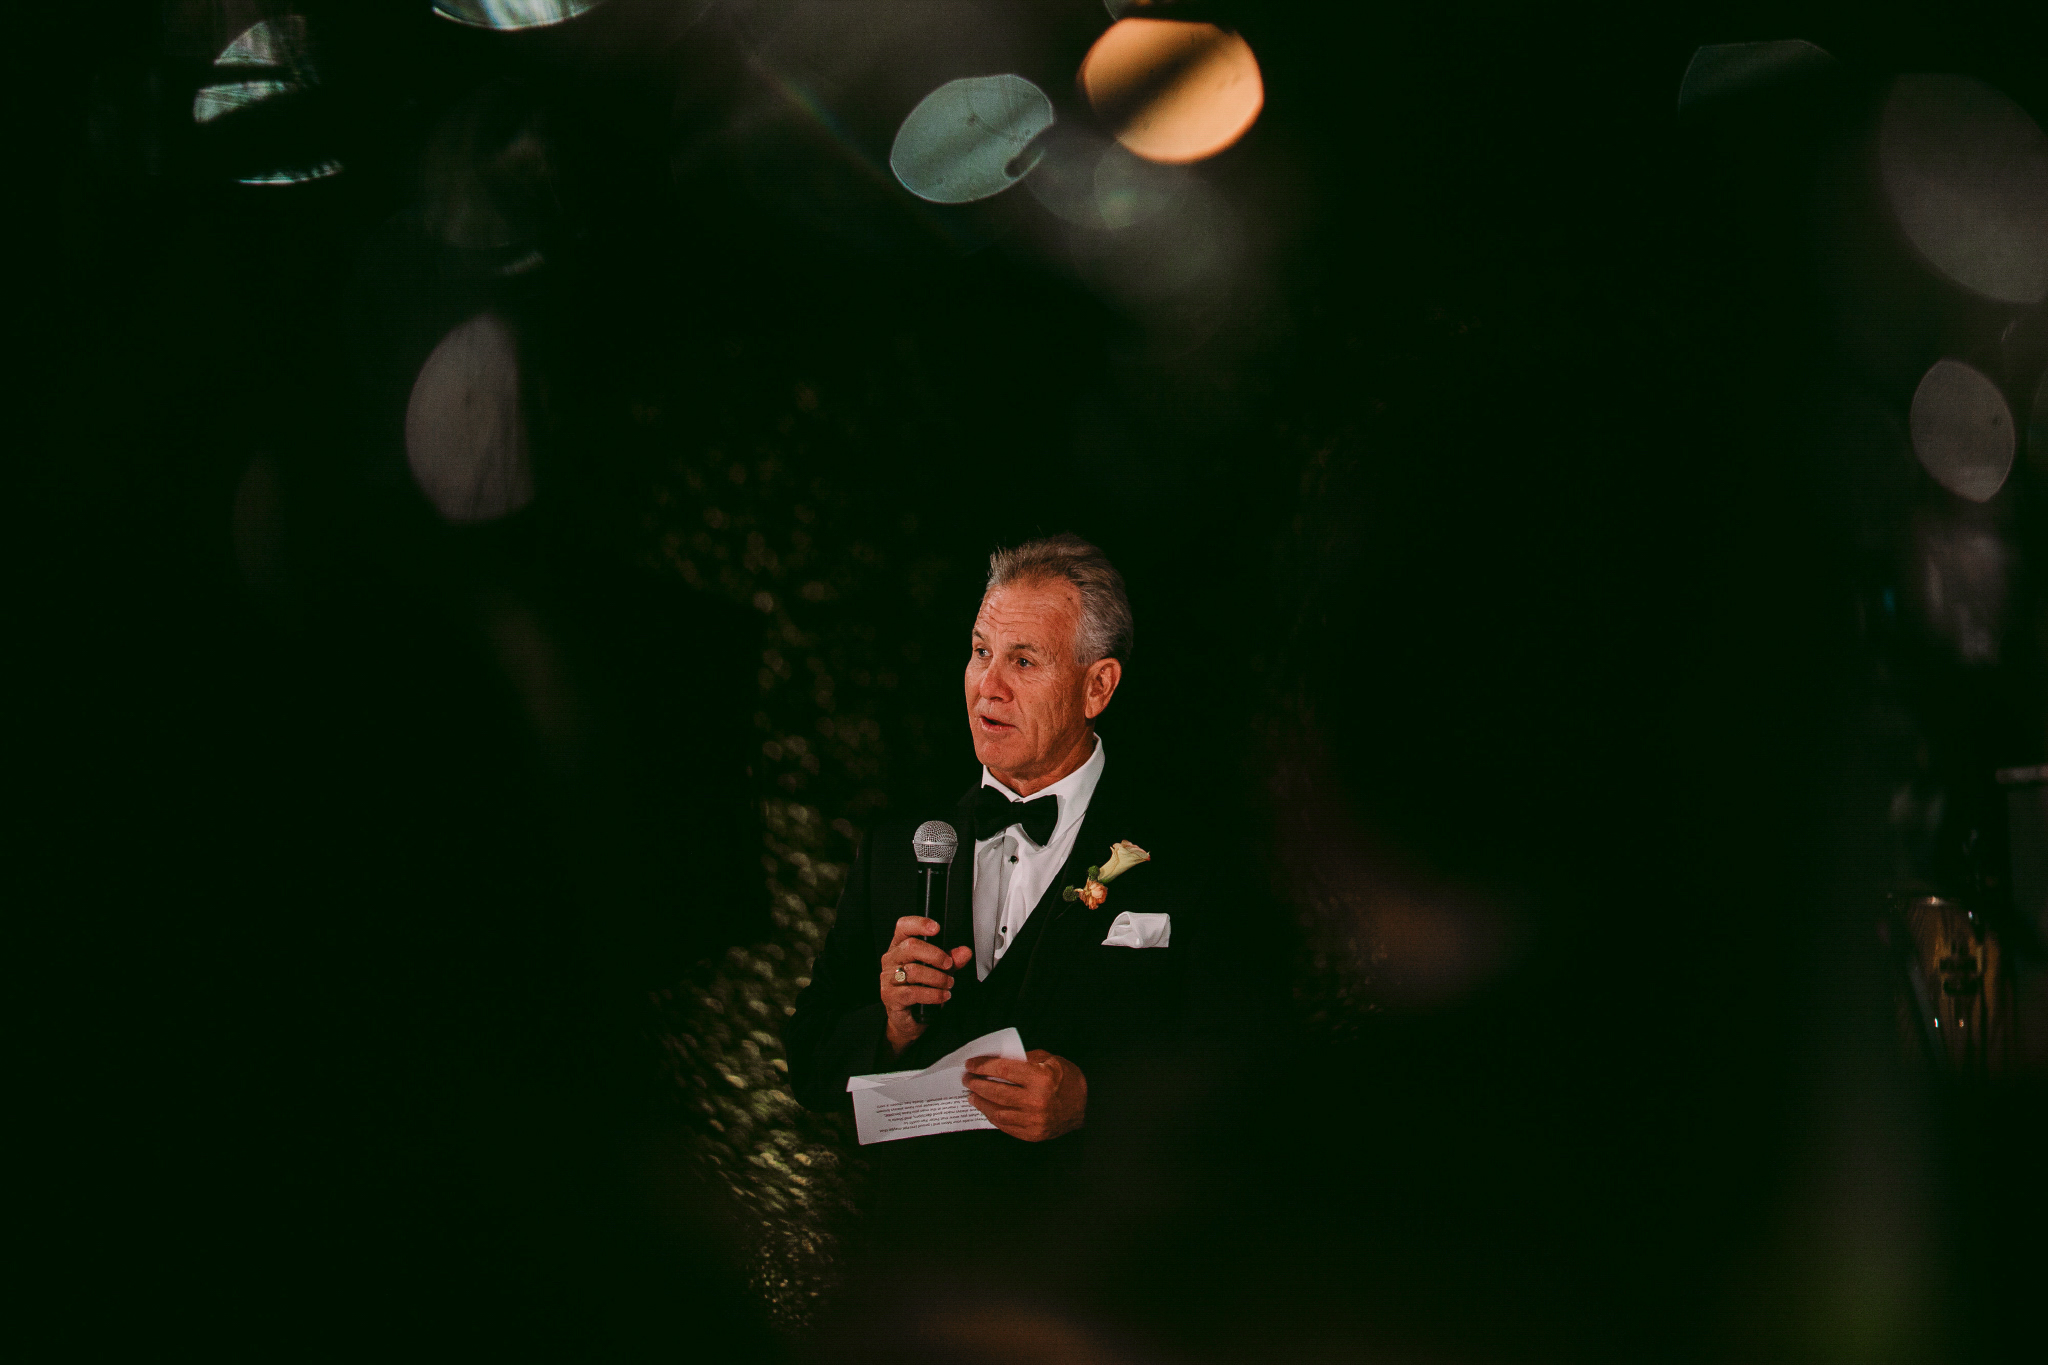 san diego wedding   photographer | man in suit holding mic and paper standing in front